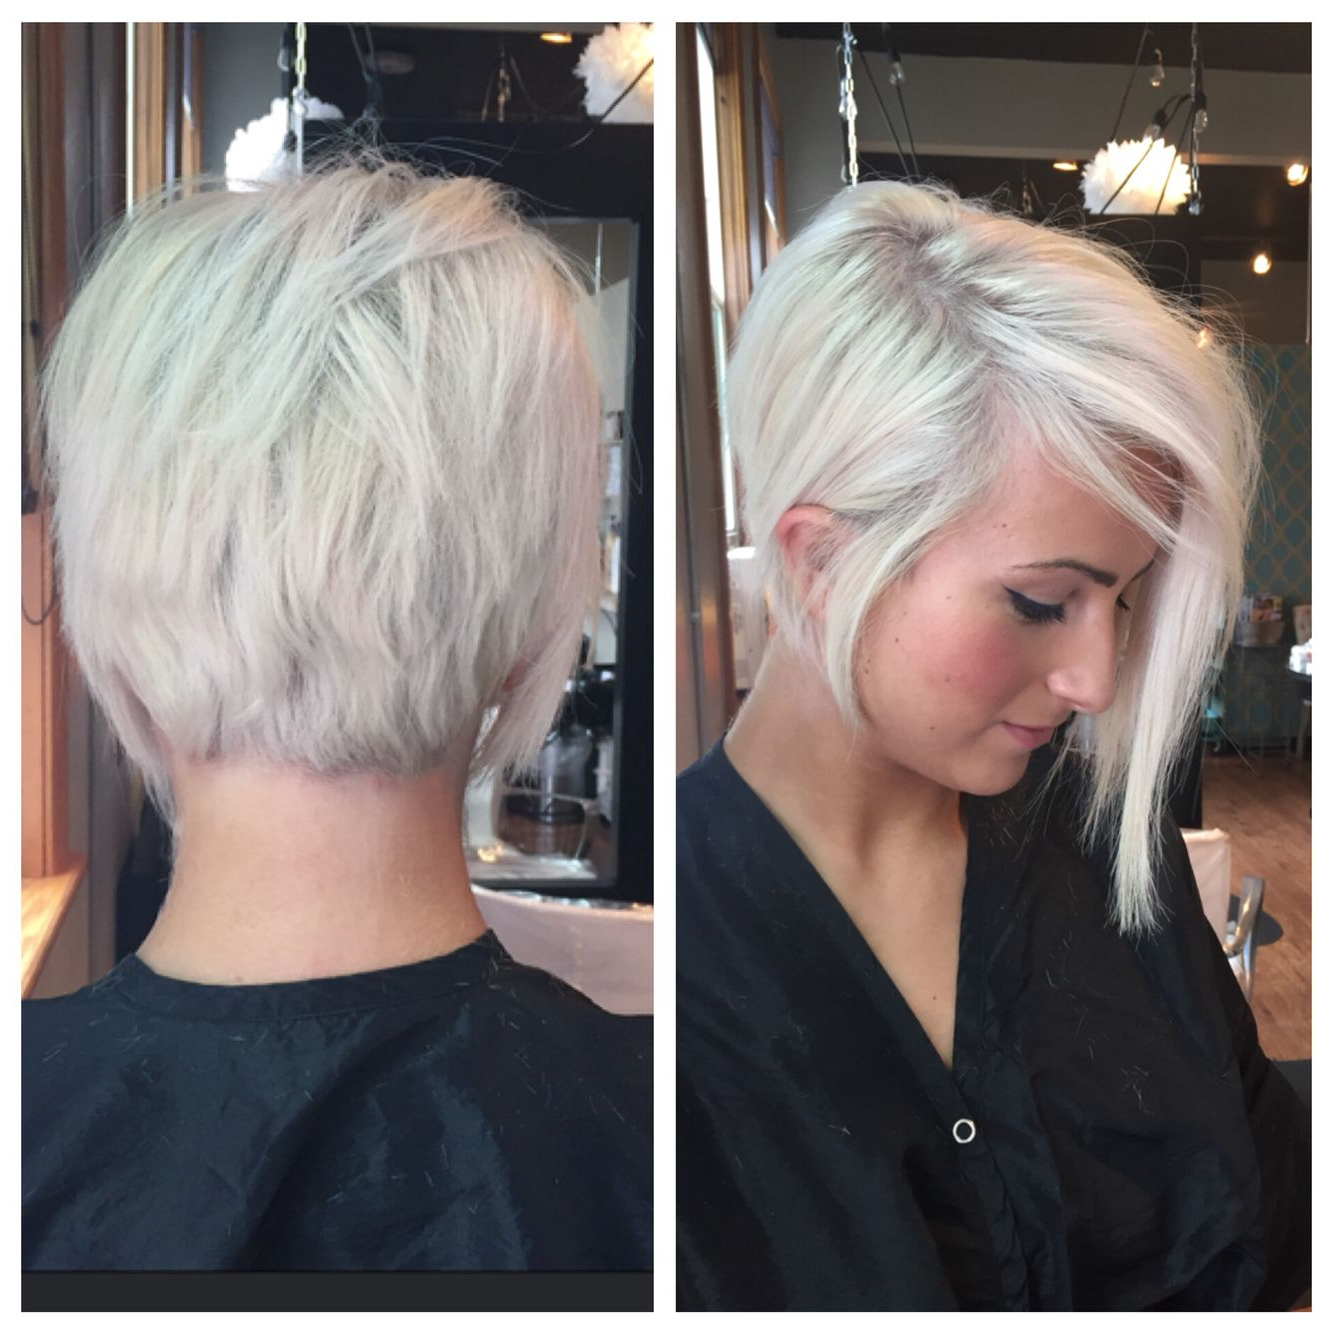 Went Even Shorter! Long A Symmetrical Pixie Cut | @hairbybran  With Regard To Symmetrical Short Haircuts (View 25 of 25)